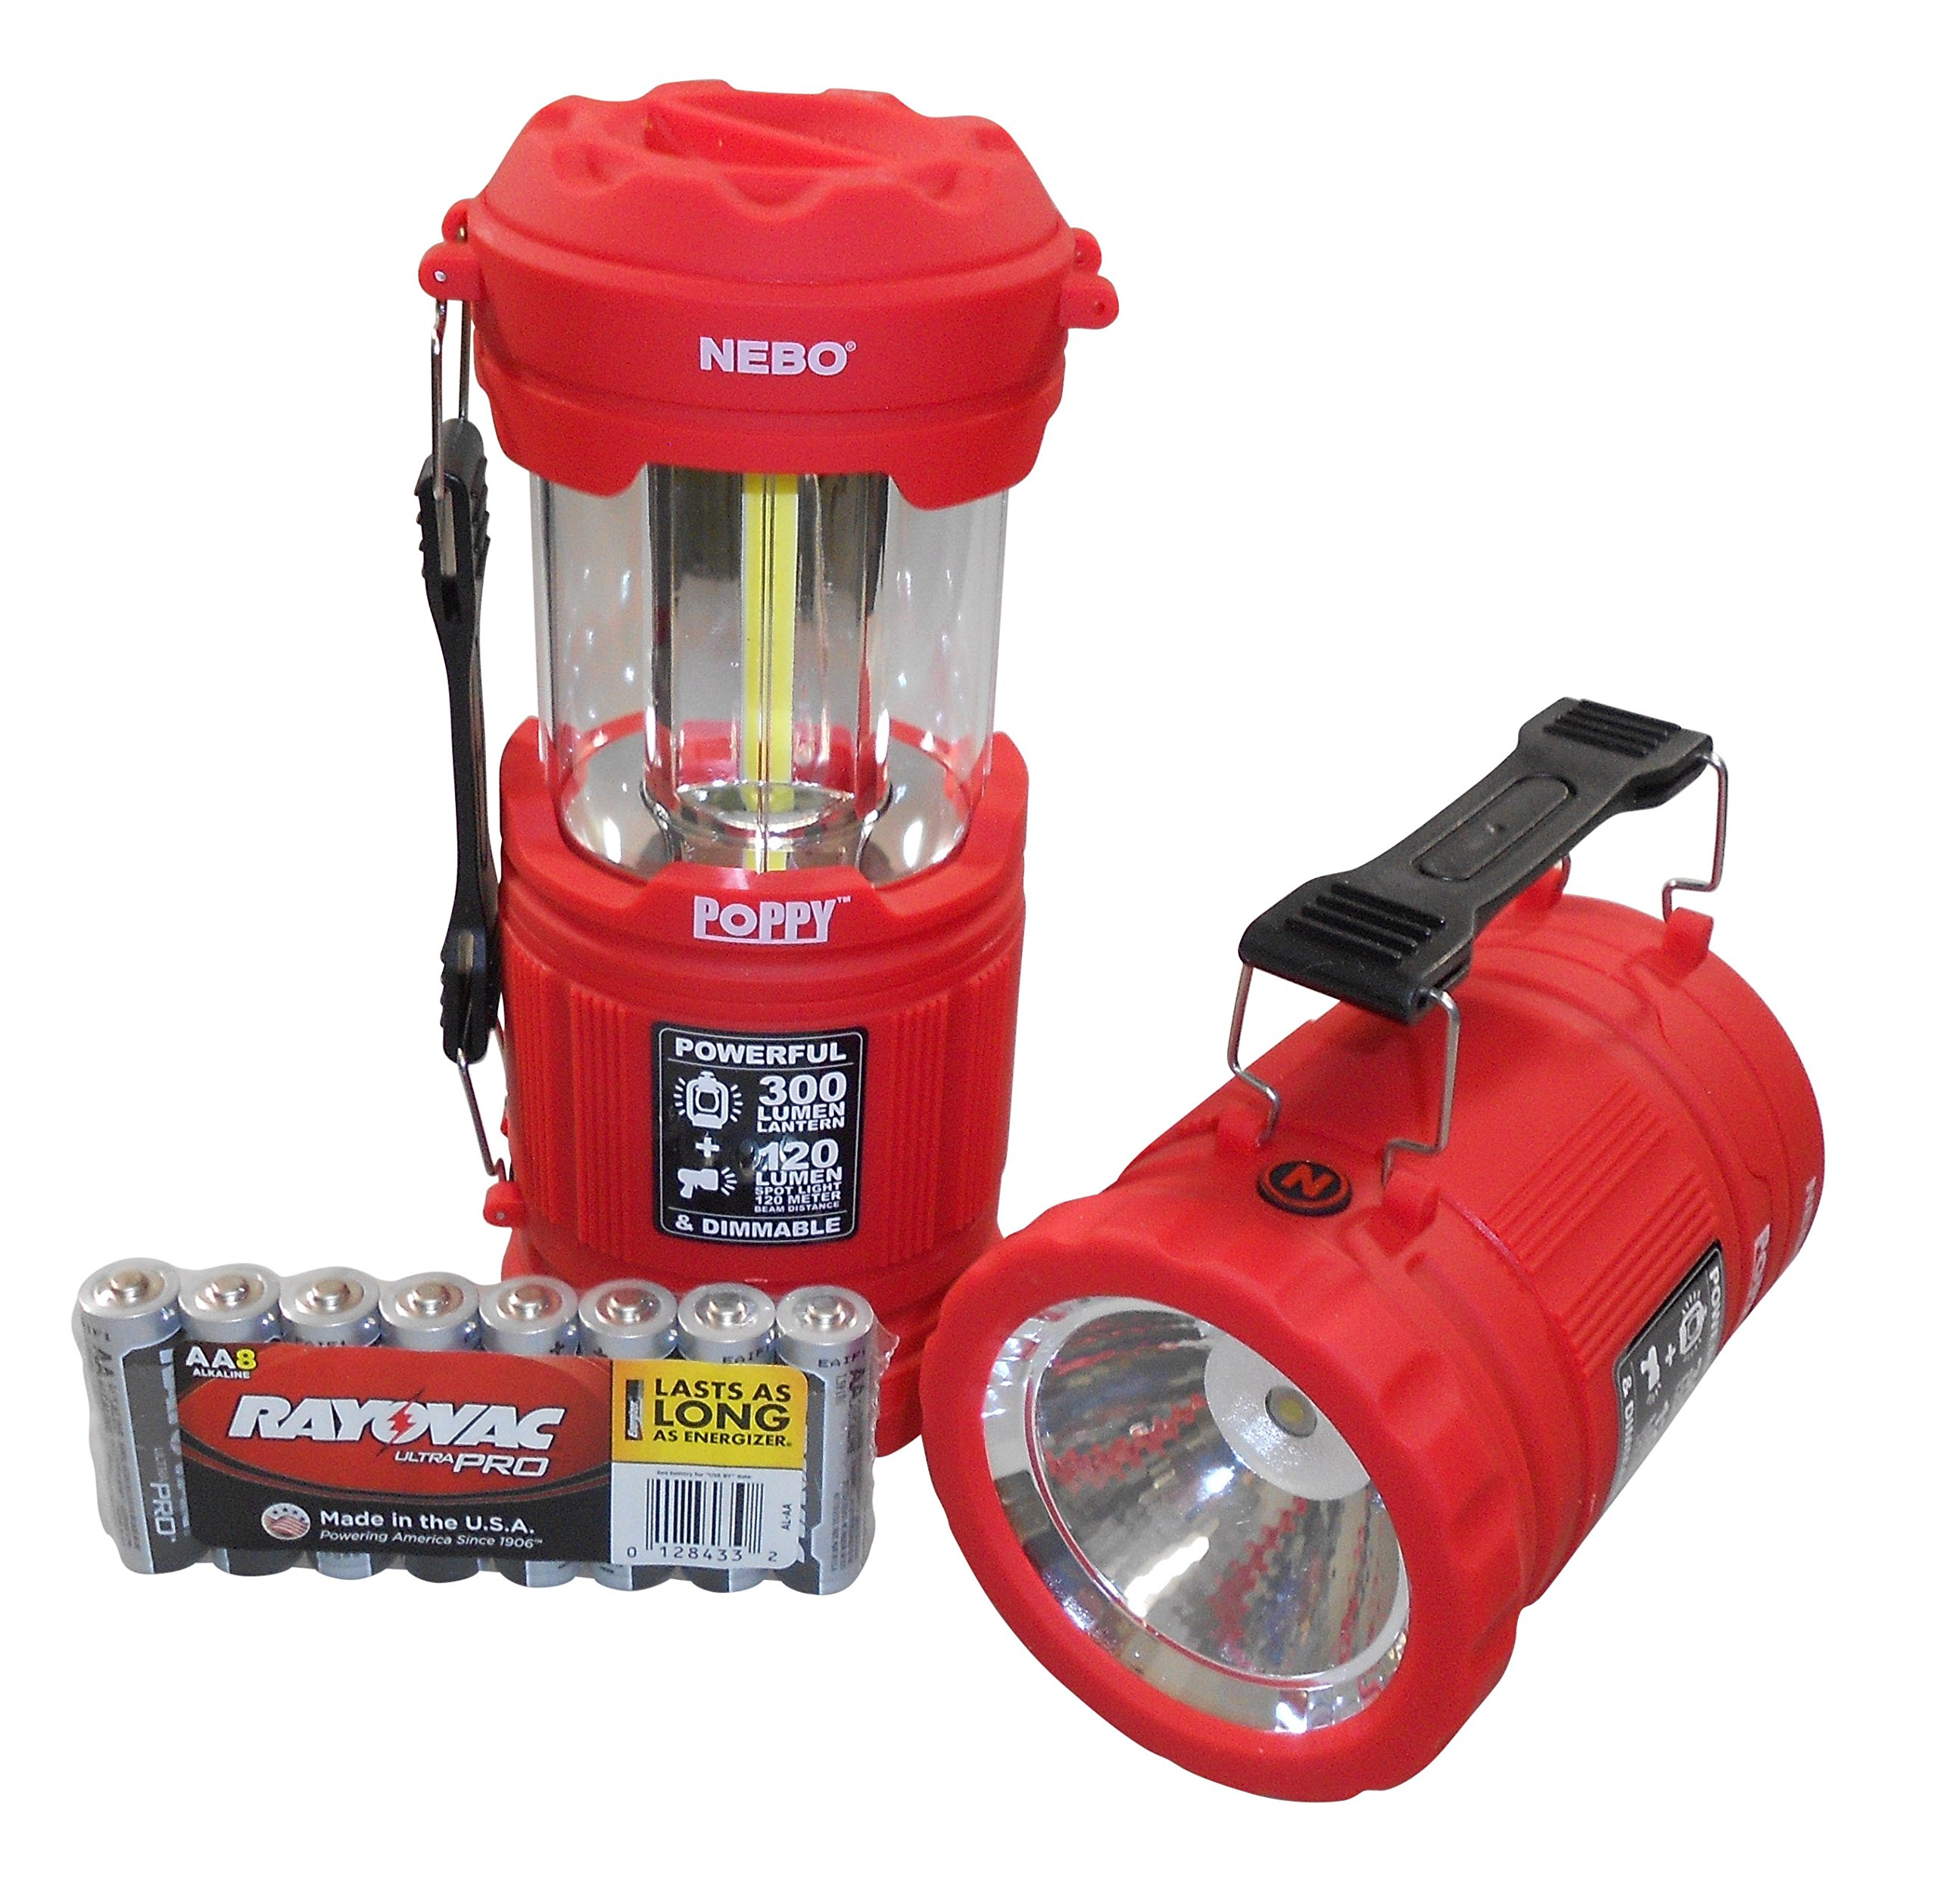 RAYOVAC Value Bright 6 Lumen 2 CR1220 LED Keychain Light with Batteries BRSLEDKEY-BRD